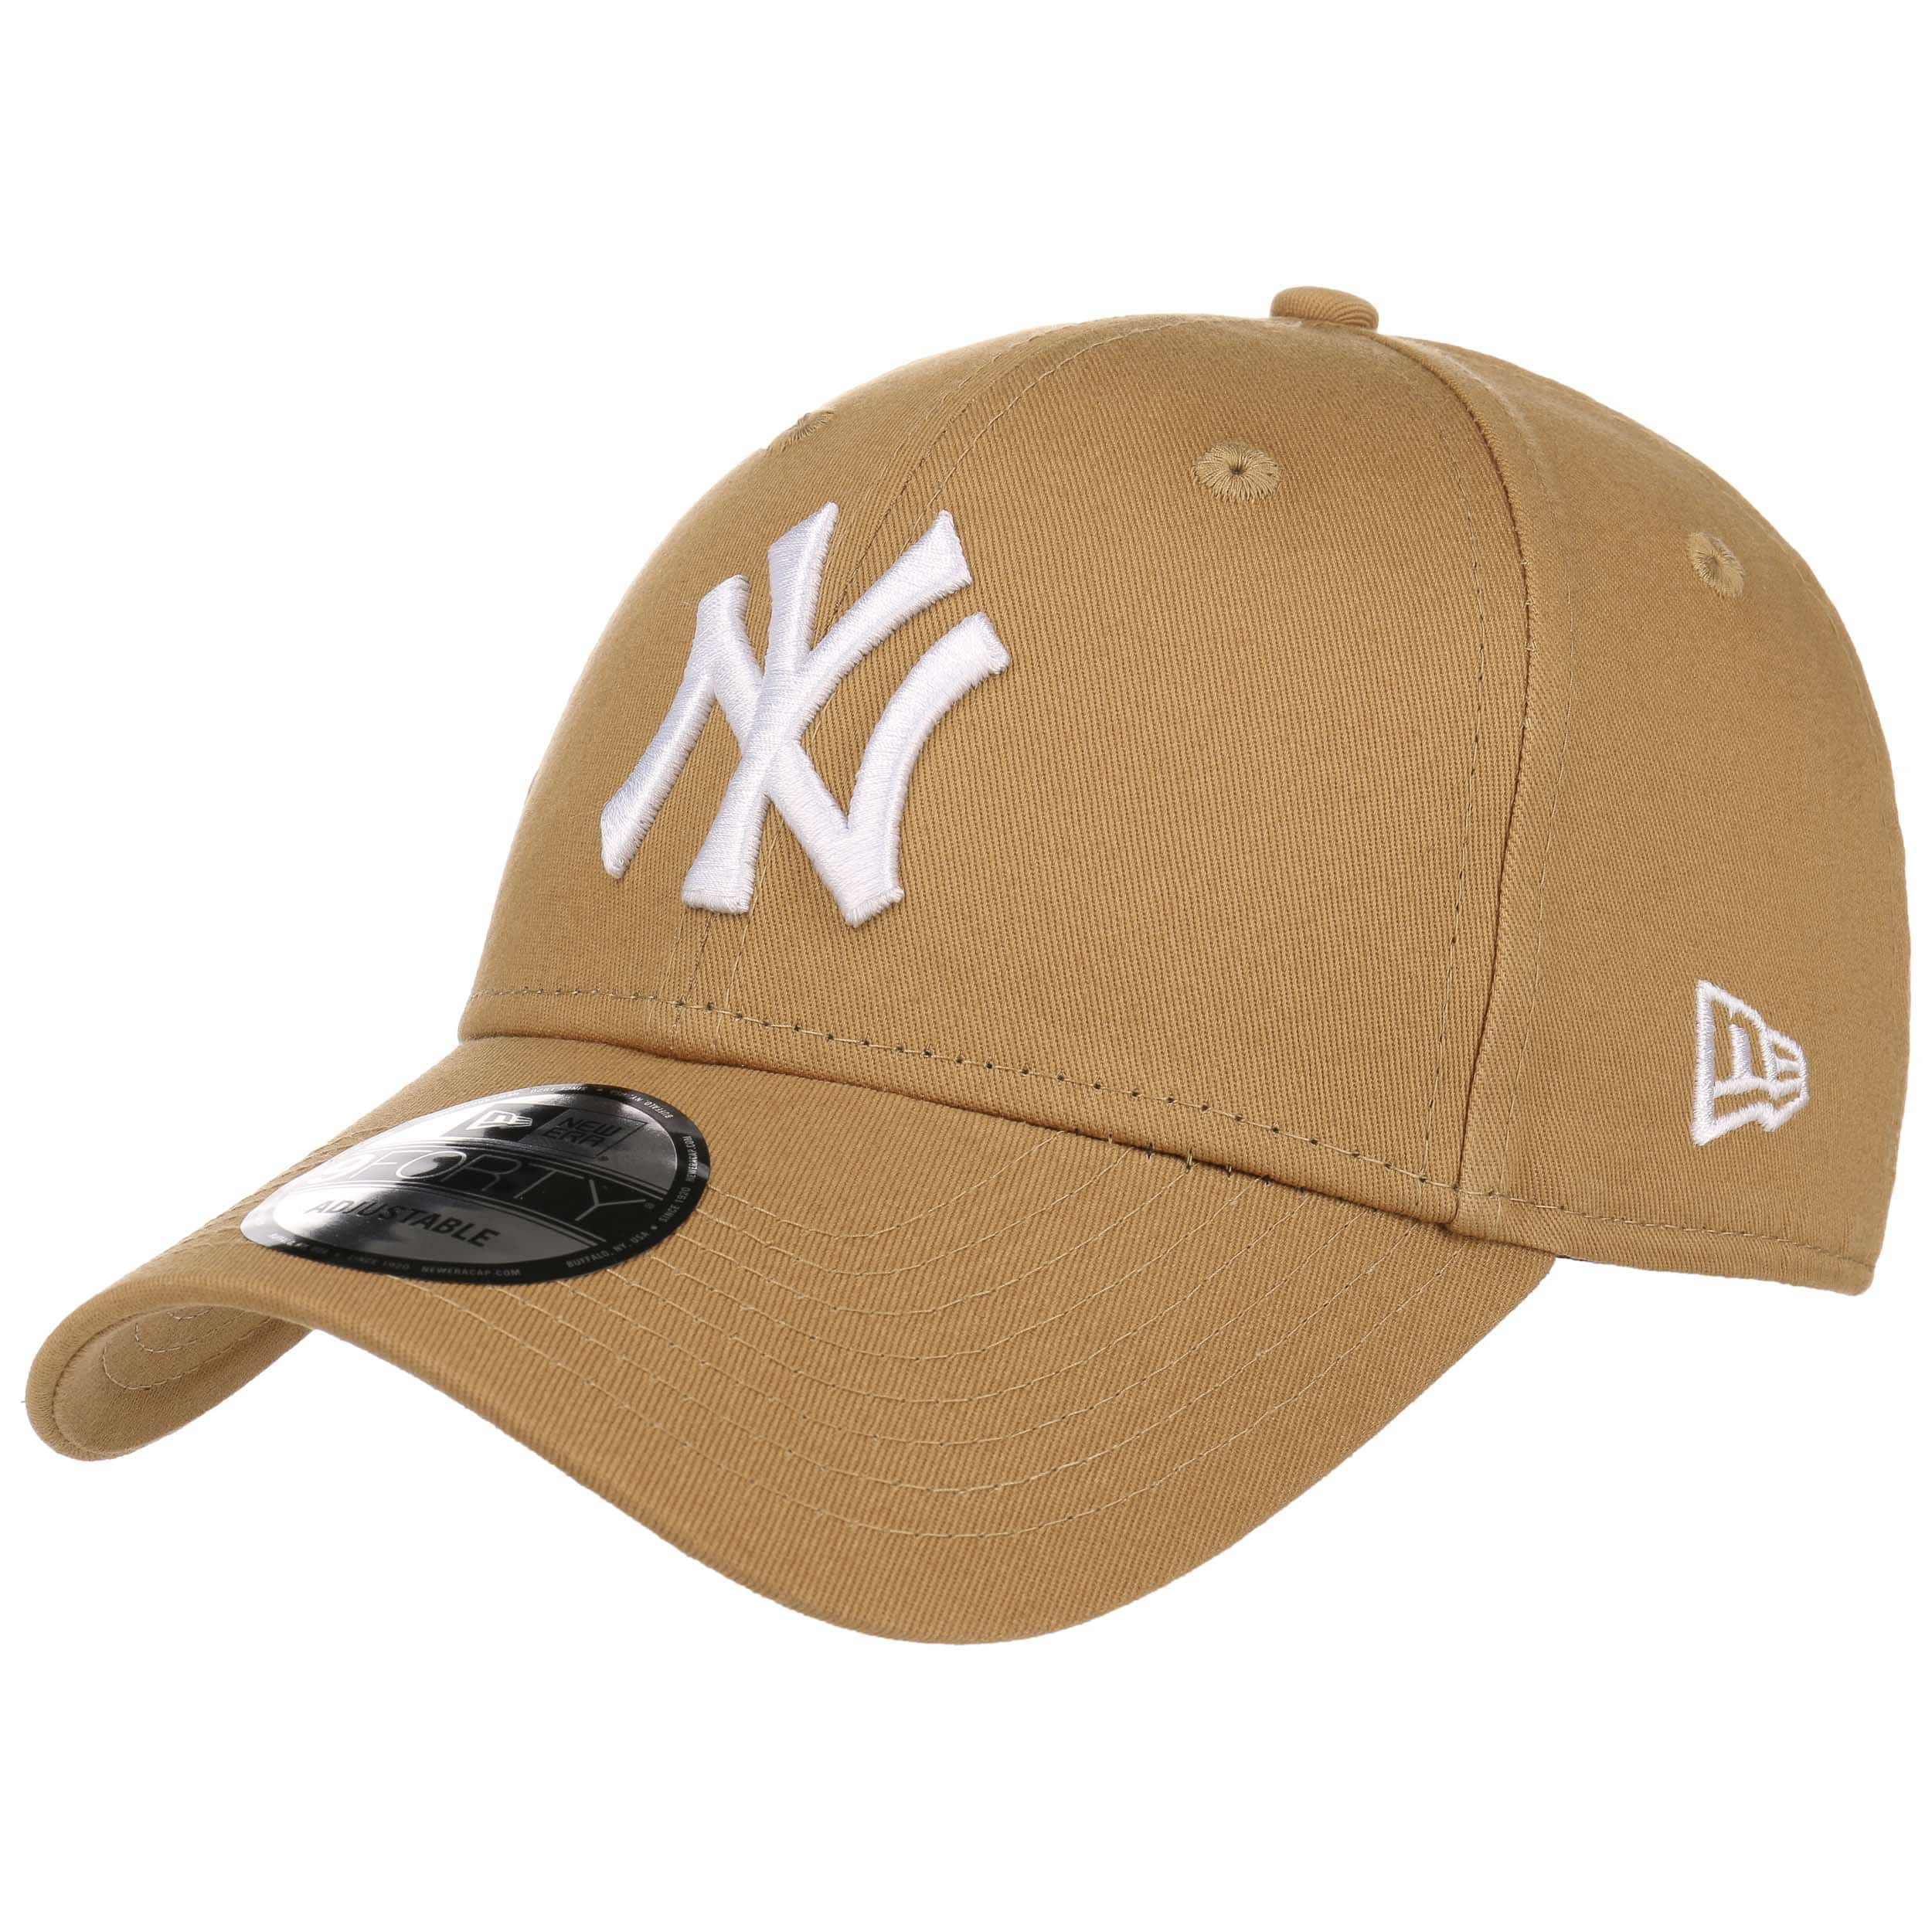 ... 9Forty League Essential NY Cap by New Era - light brown 6 ... 1420ba90a